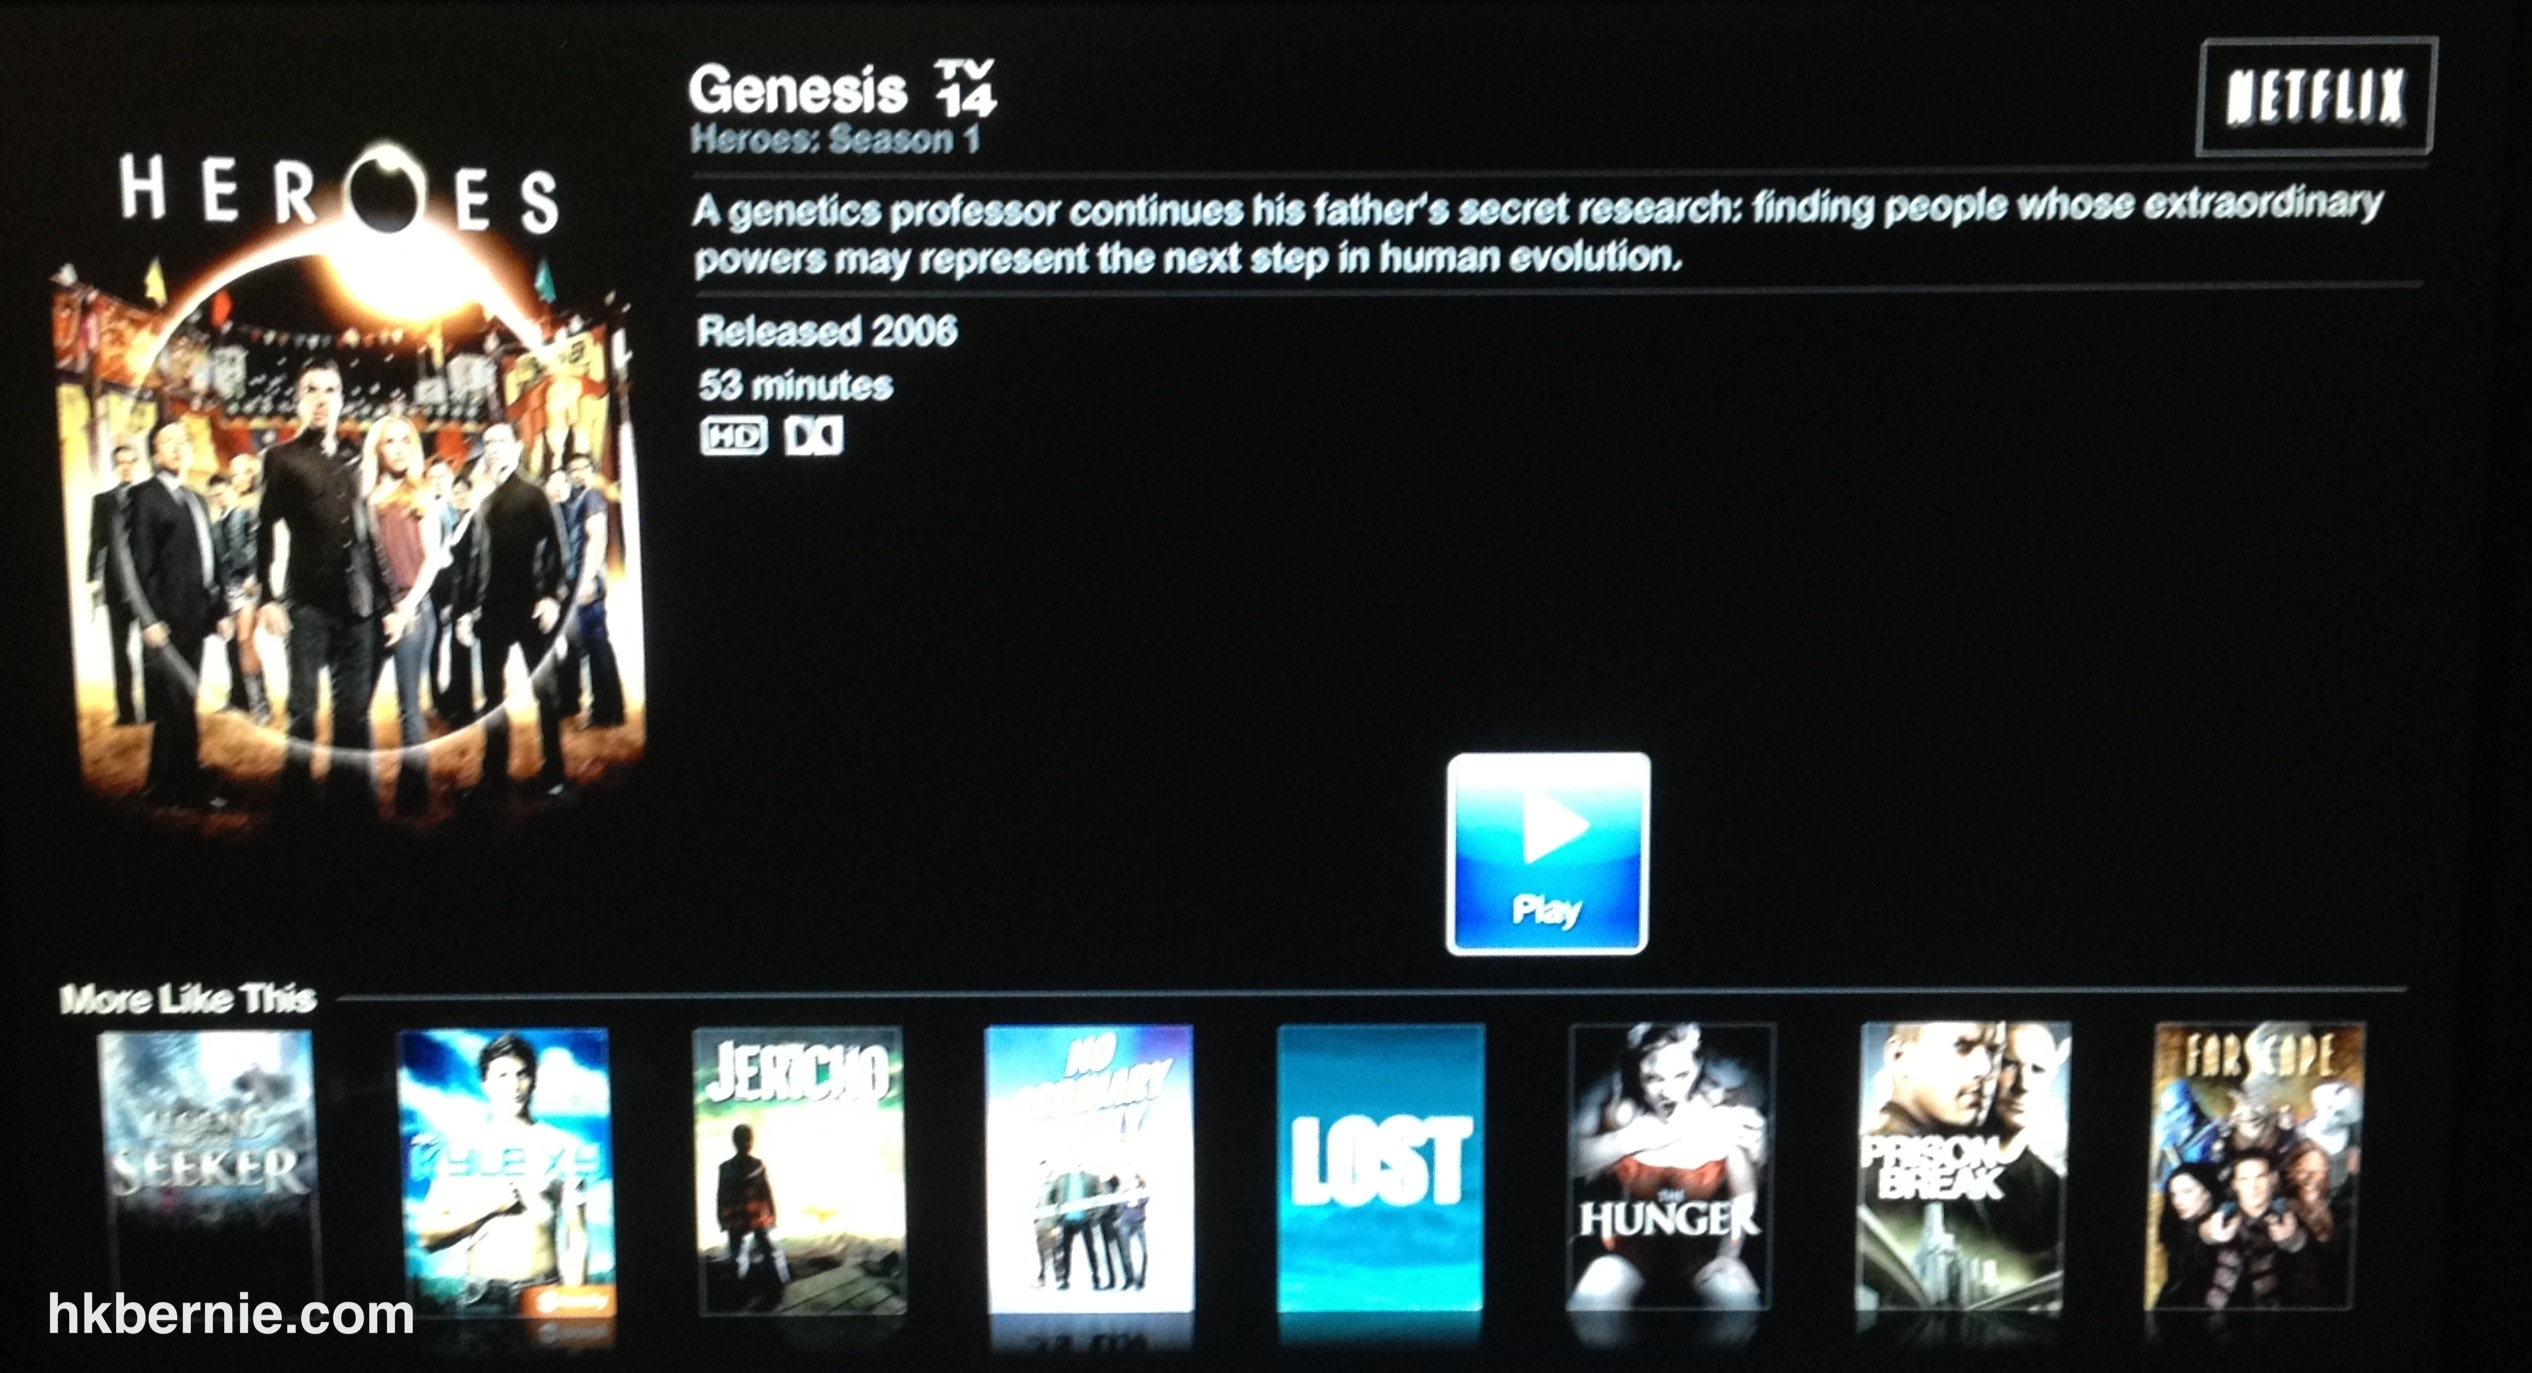 how to find netflx apple tv